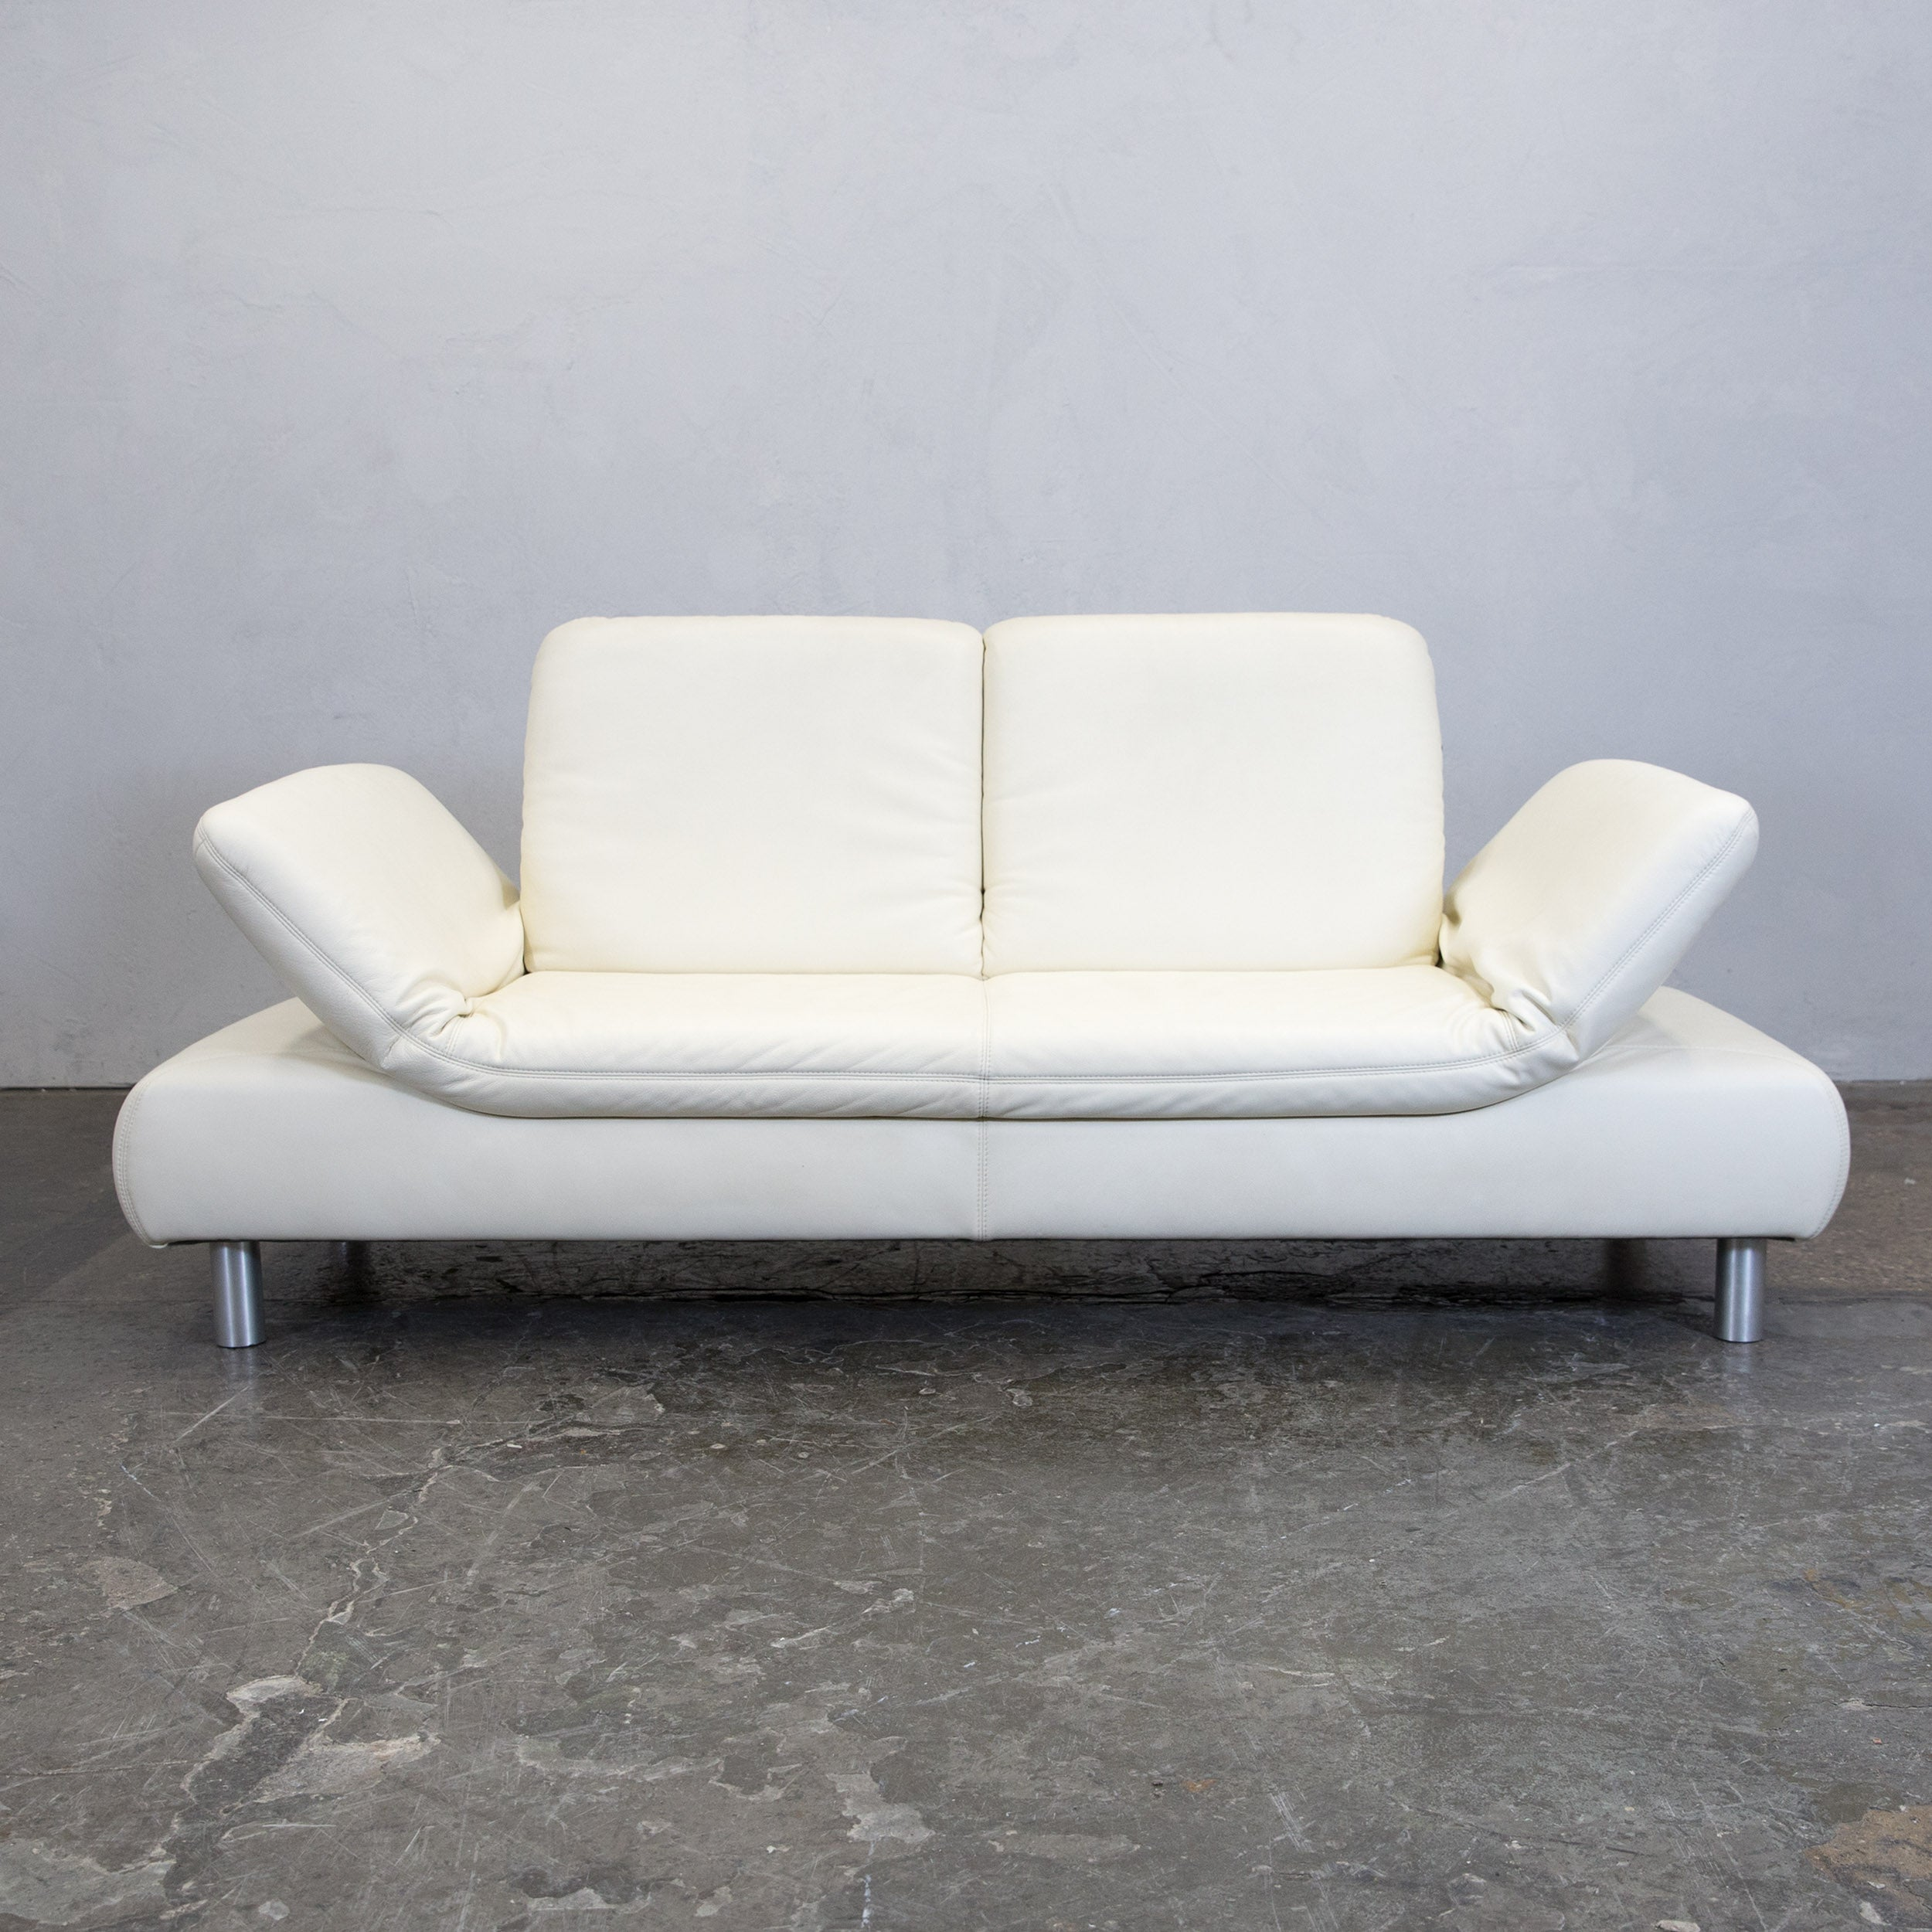 Backabro Ecksofa Backabro Sessel Ikea Schlafsofa Aufklappen Luxus Ikea Backabro